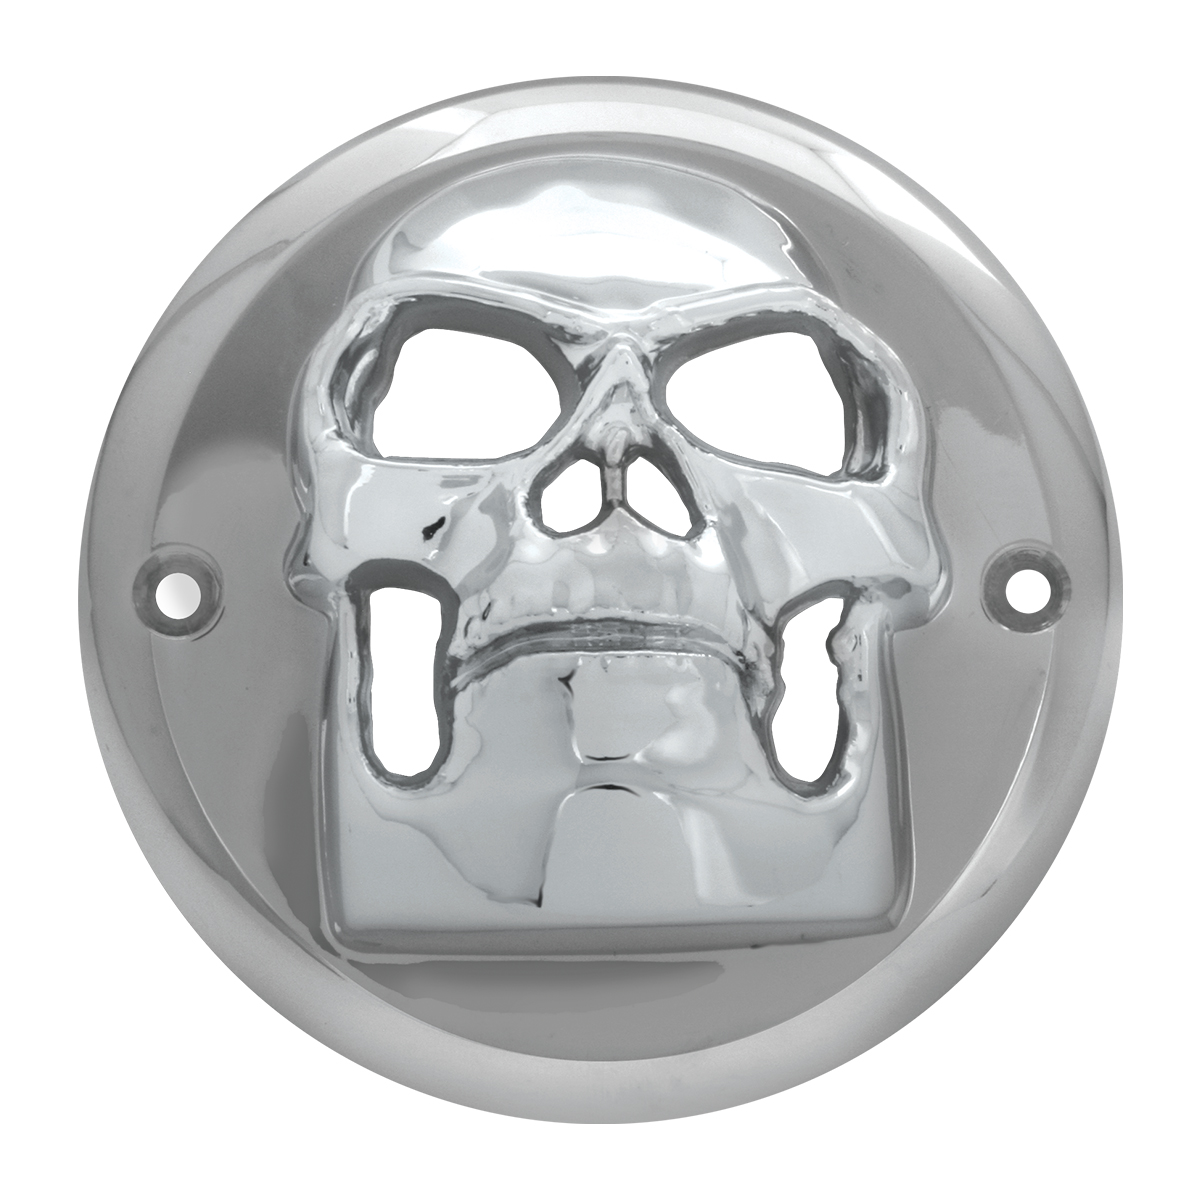 "78489 Chrome Plastic Skull Bezel for 2"" Round Light"